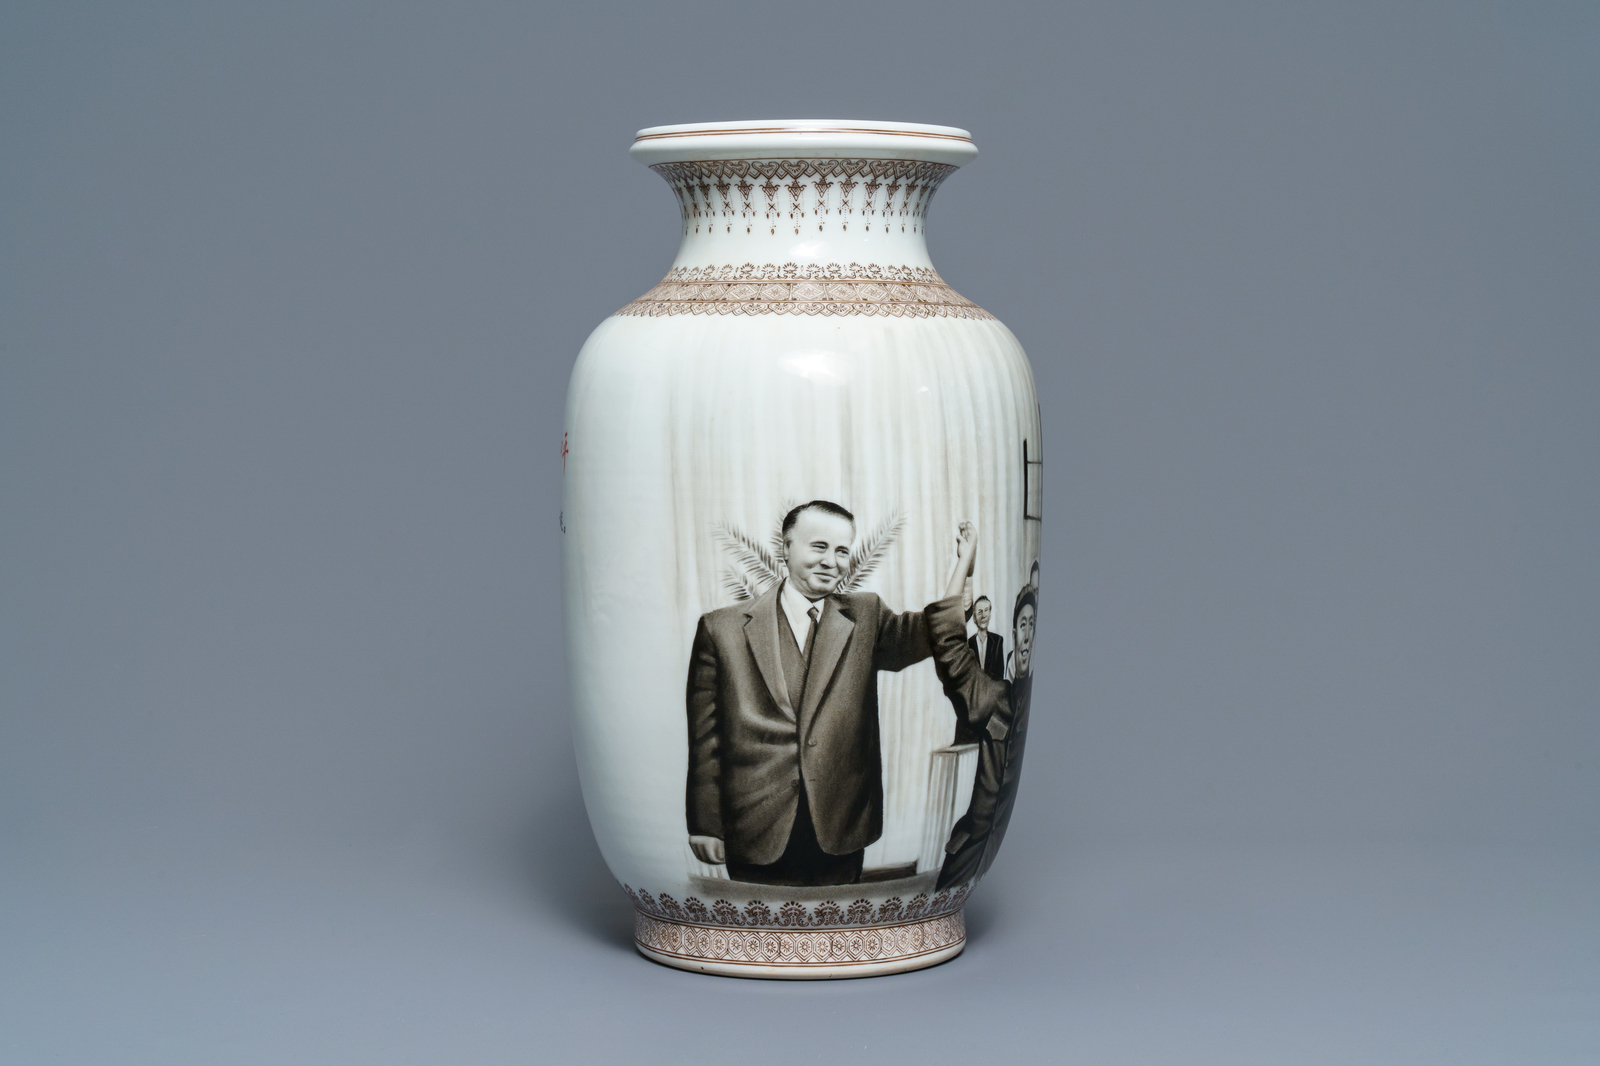 Lot 27 - A Chinese Cultural Revolution vase depicting communism in Albania, 20th C.